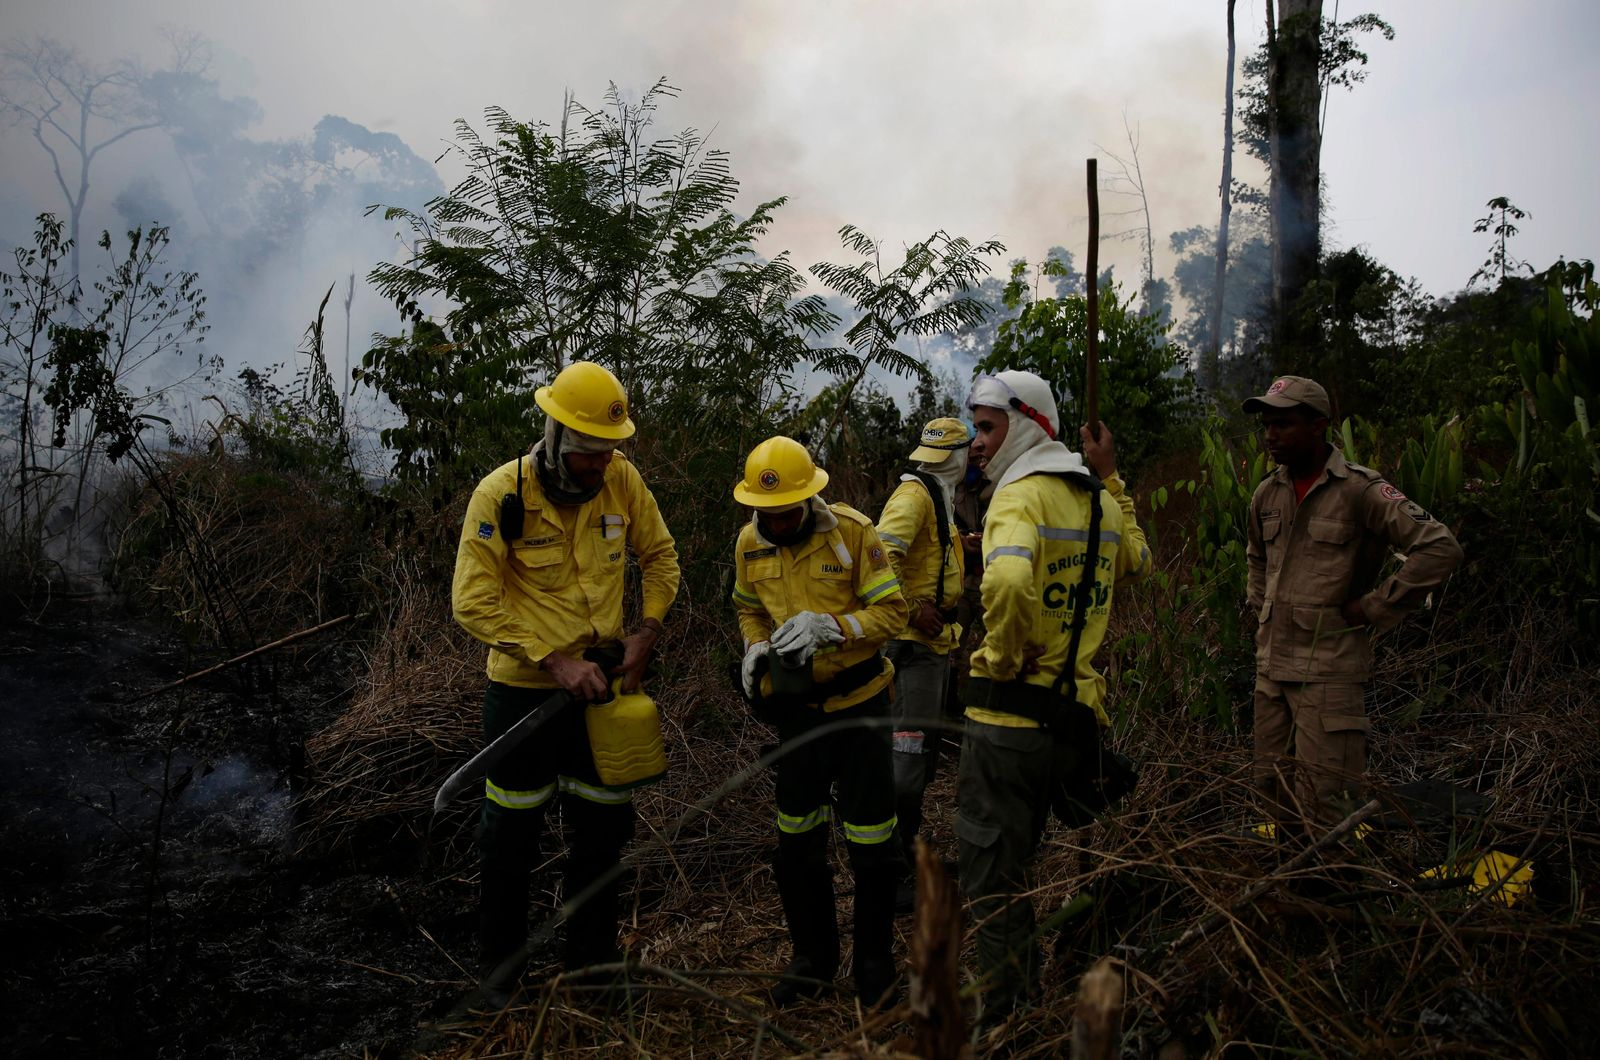 Firefighters rest briefly as they put out fires along the road to Jacunda National Forest, near the city of Porto Velho in the Vila Nova Samuel region which is part of Brazil's Amazon, Monday, Aug. 26, 2019.{ } (AP Photo/Eraldo Peres)